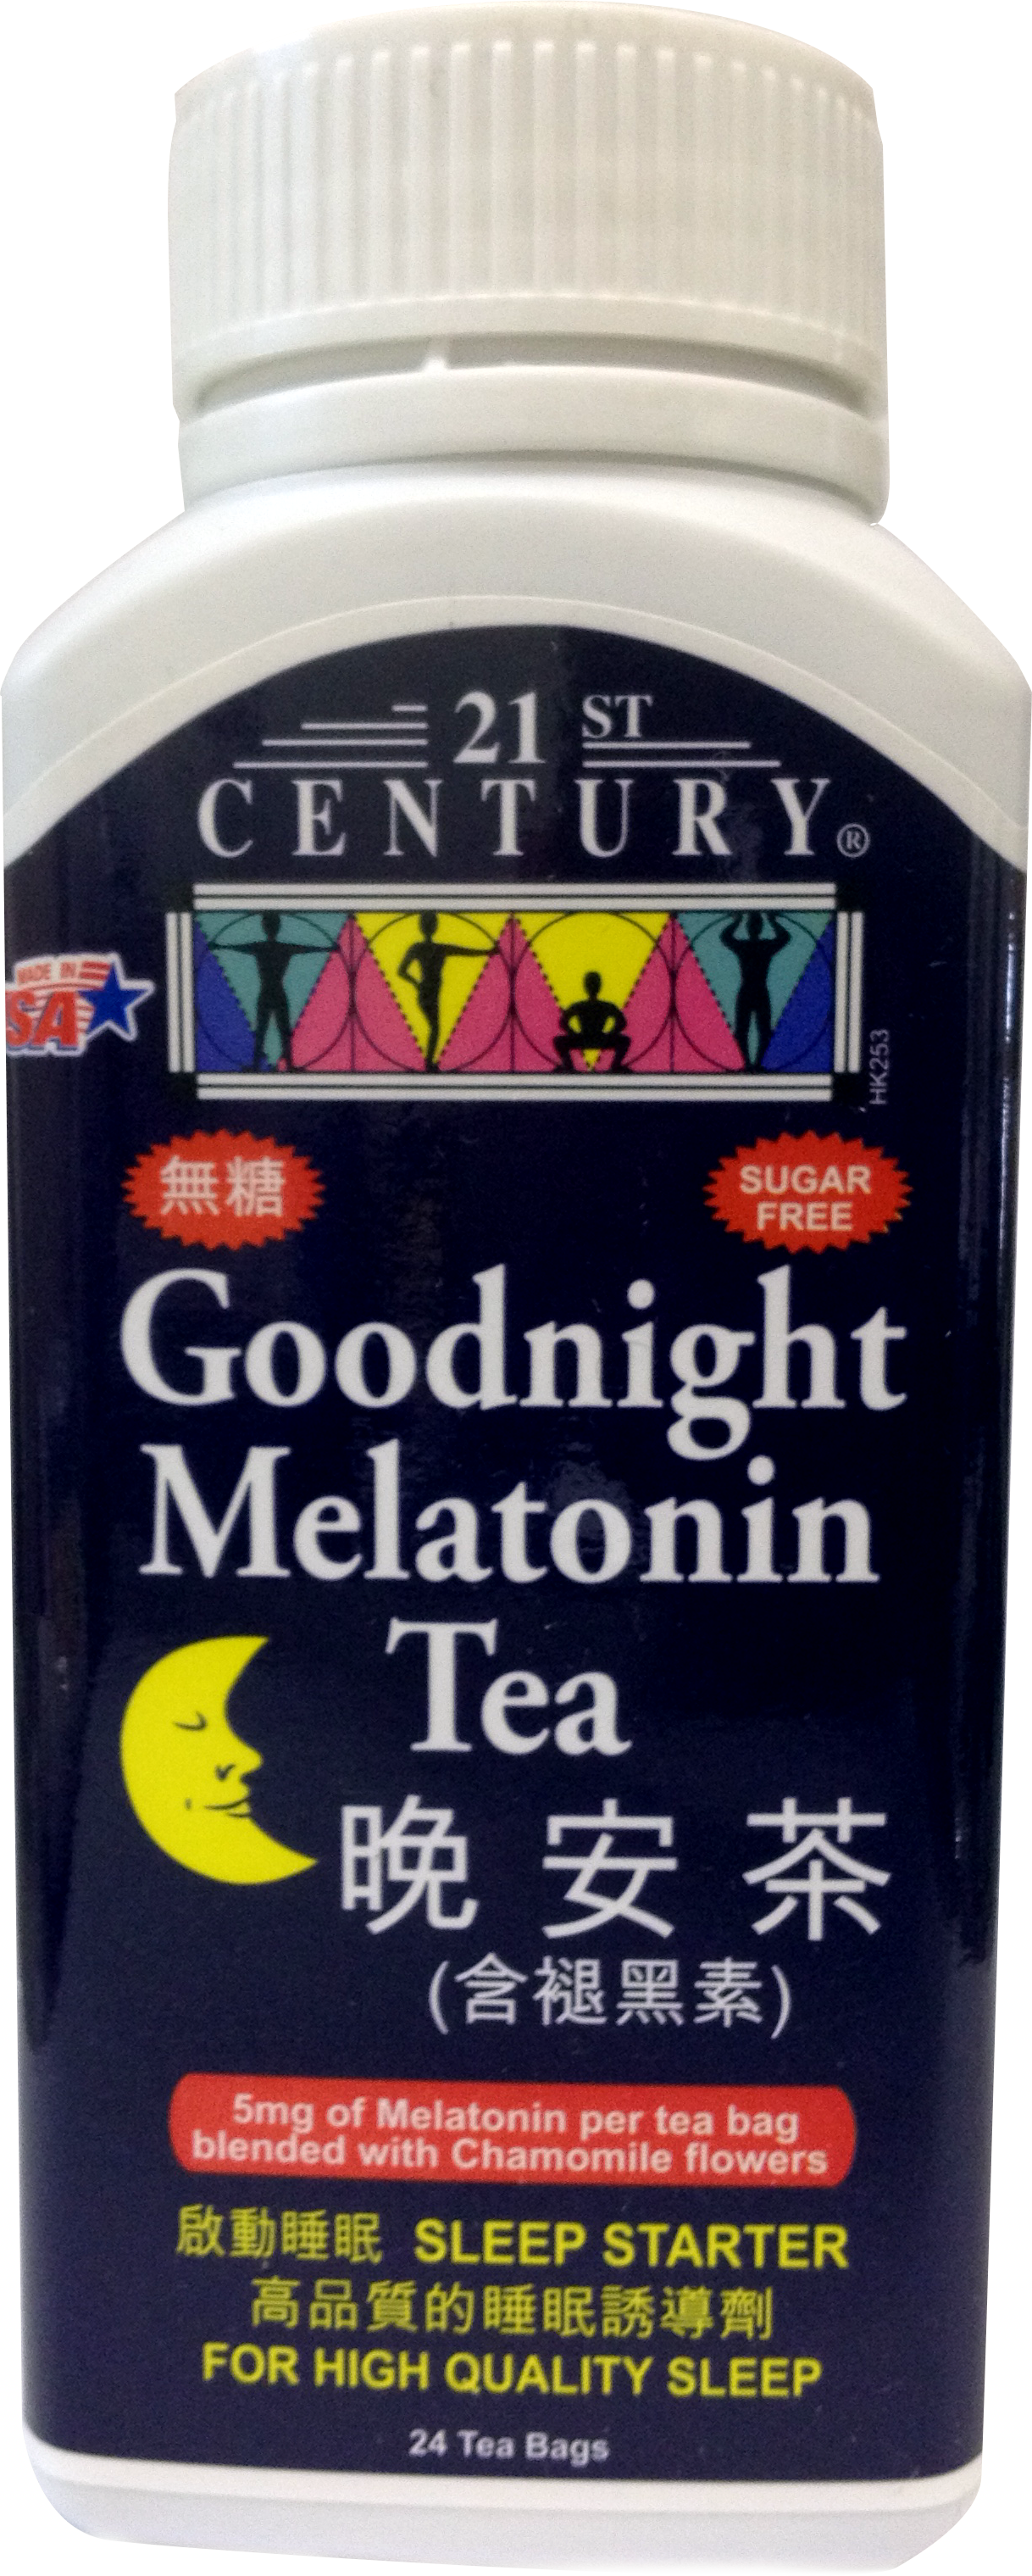 GoodNight Melatonin Tea with Chamomile, 24 tea bags